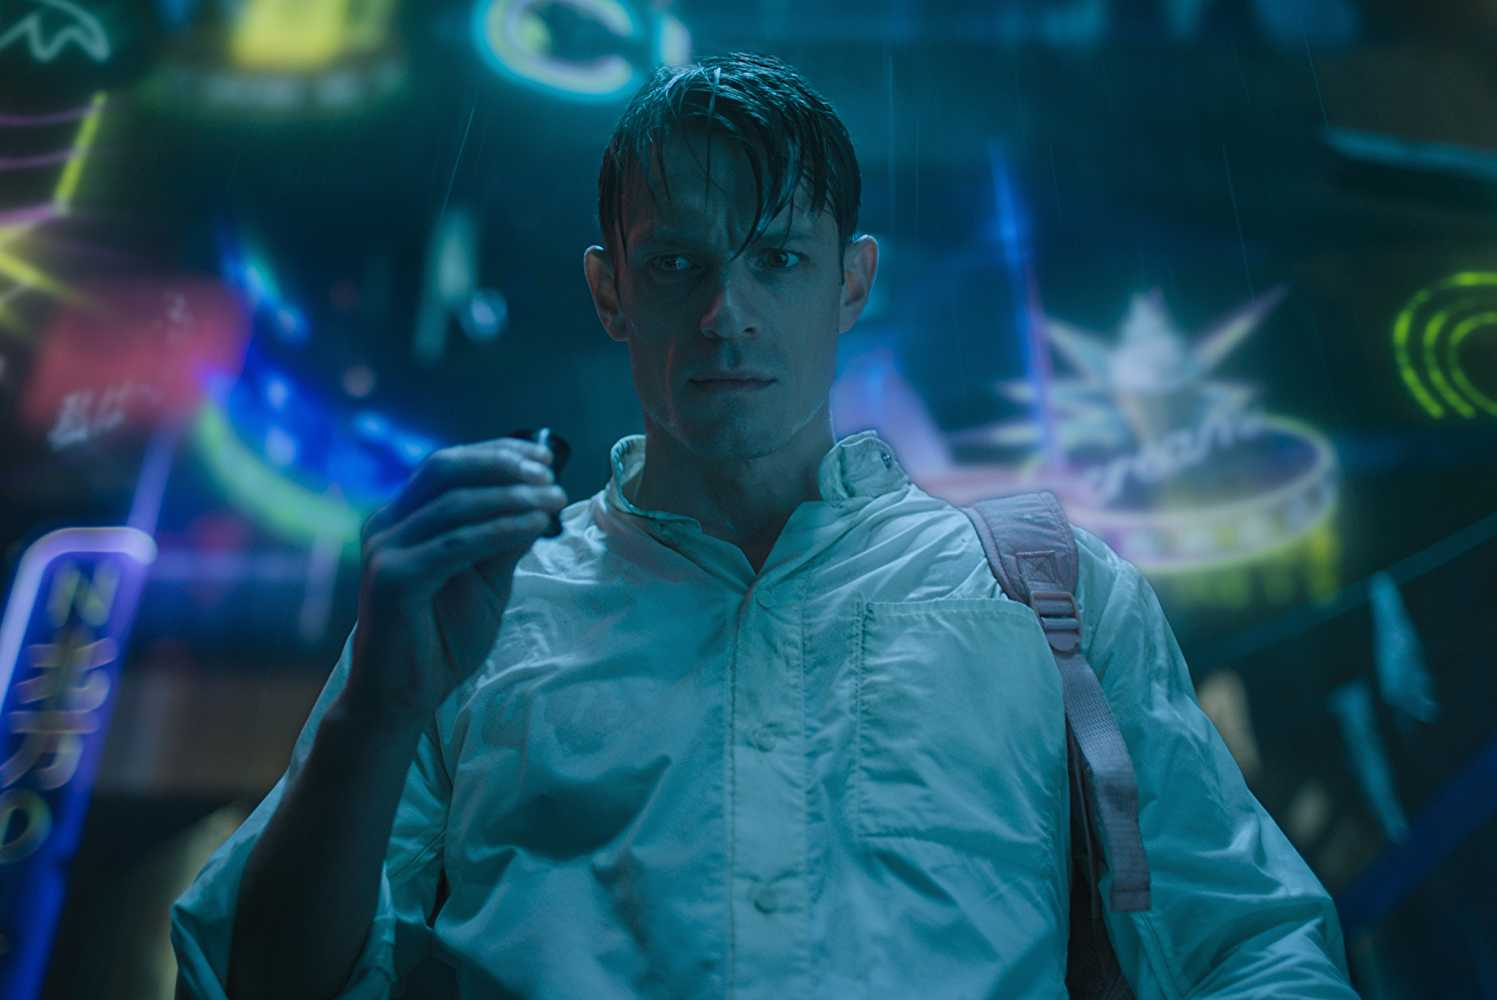 'Altered Carbon' is one of the best shows of the year (Source: IMDb)